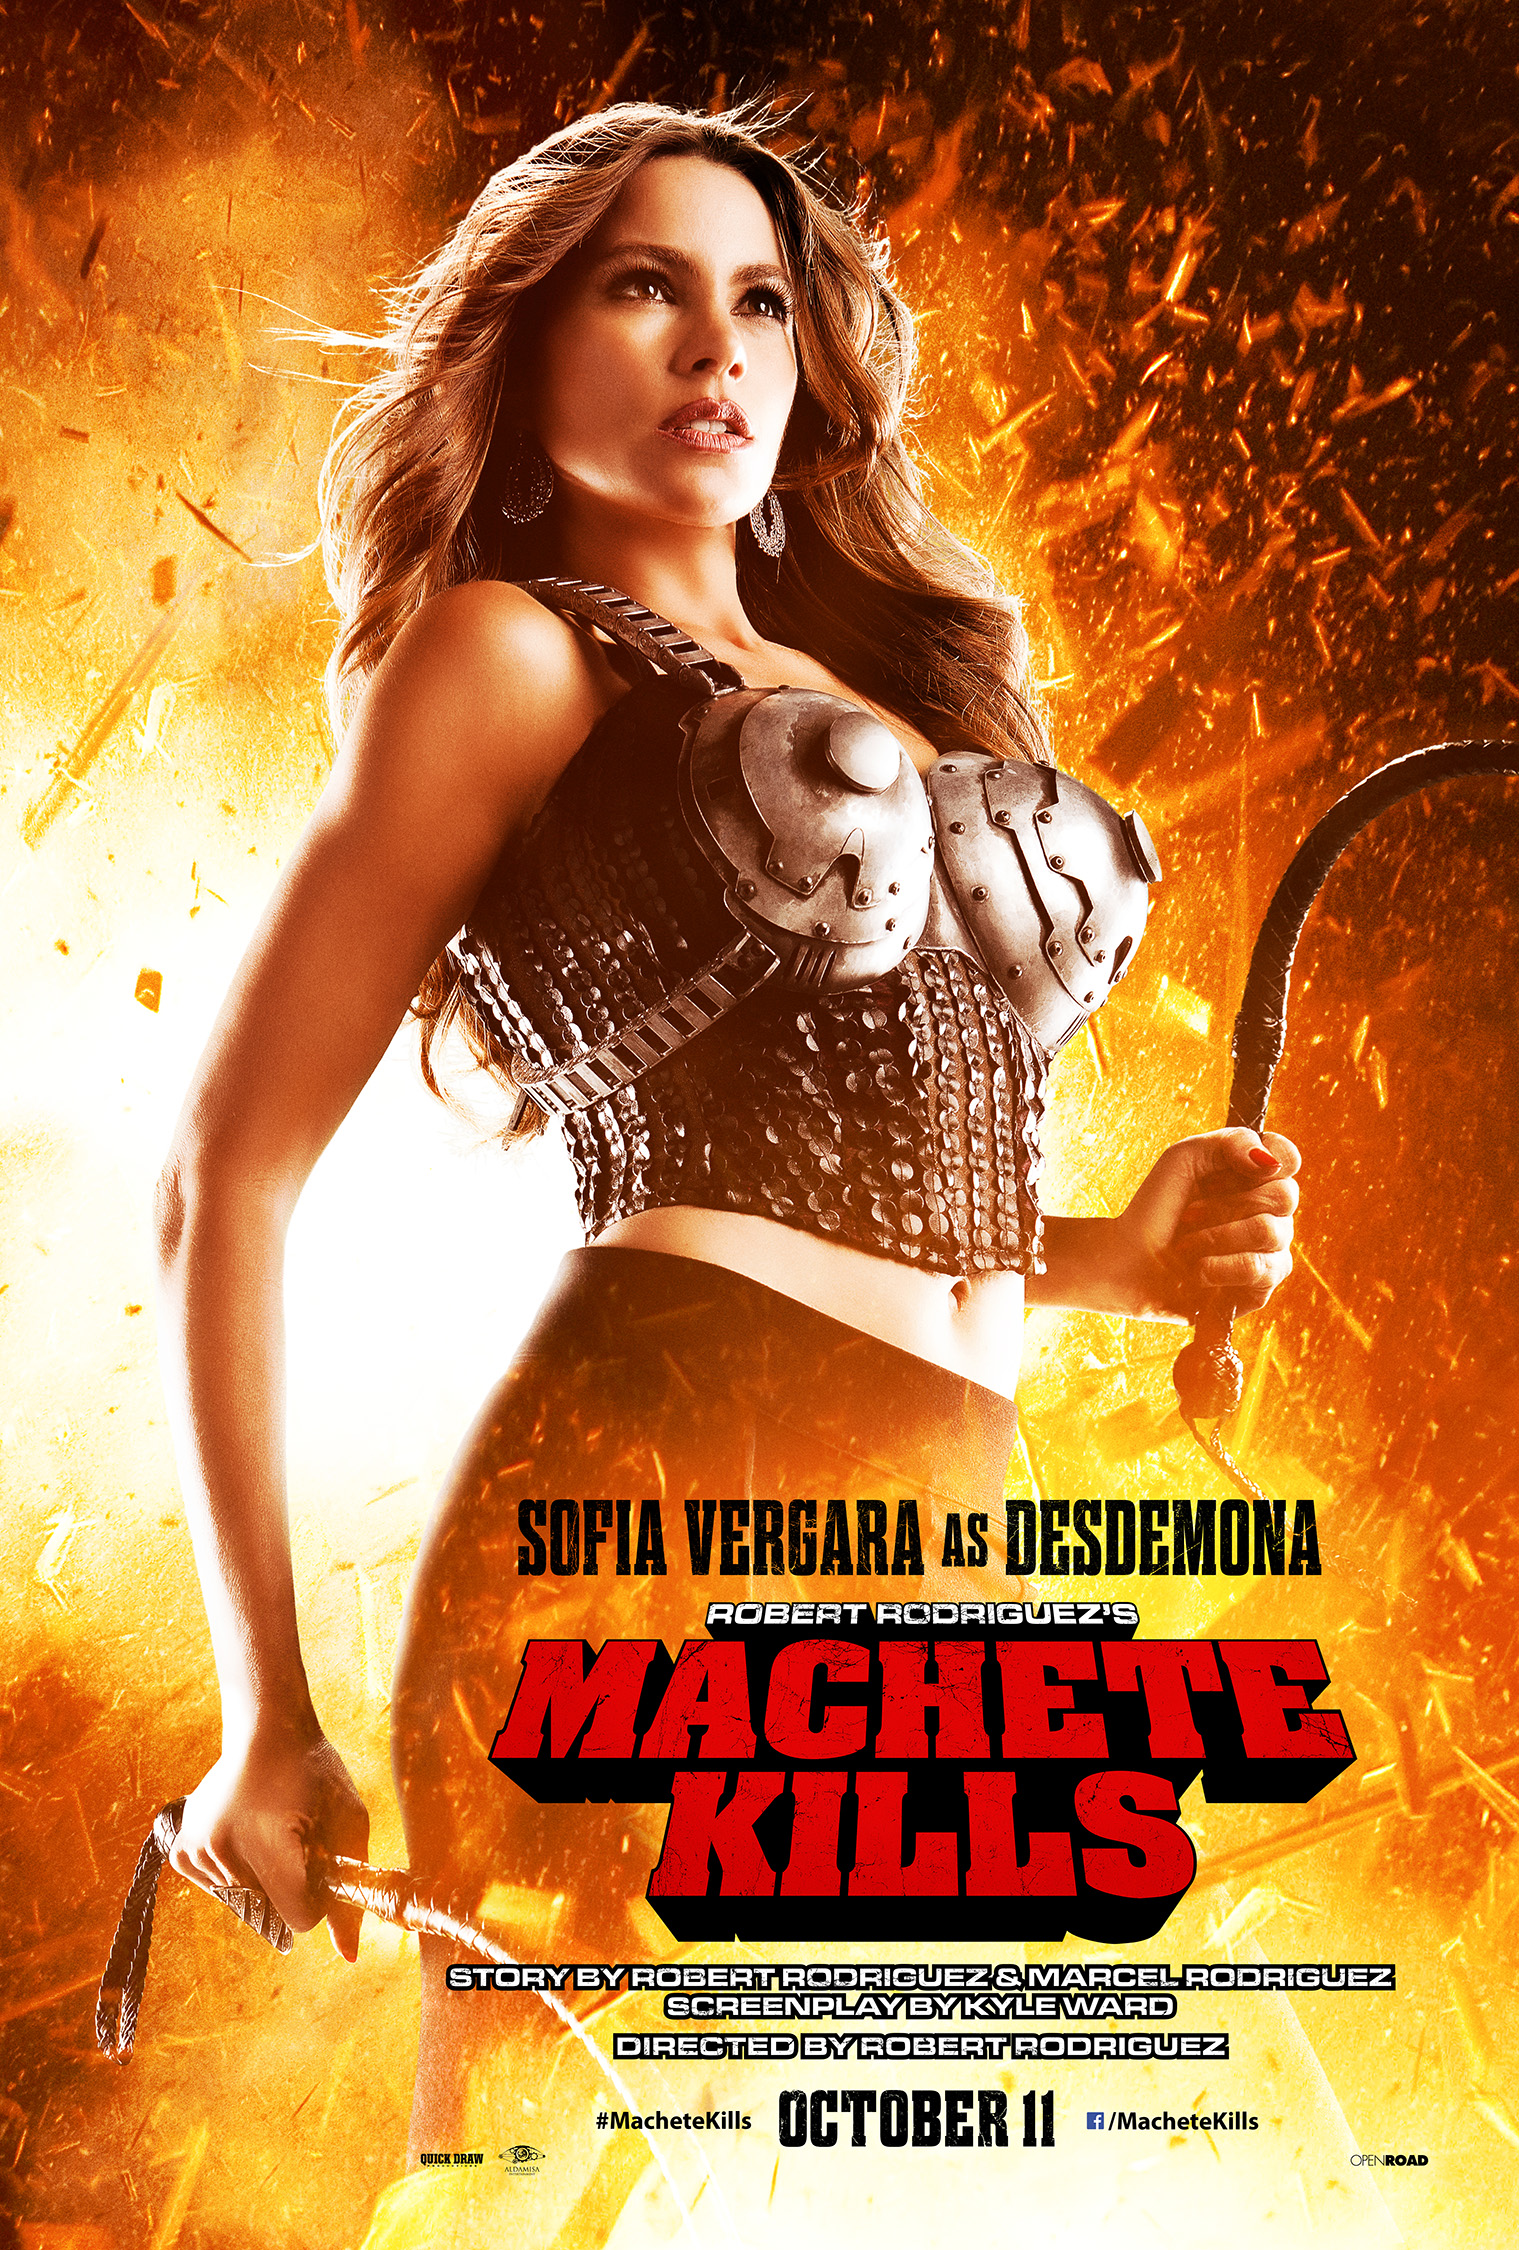 Sofia Vergara Machete Kills Poster